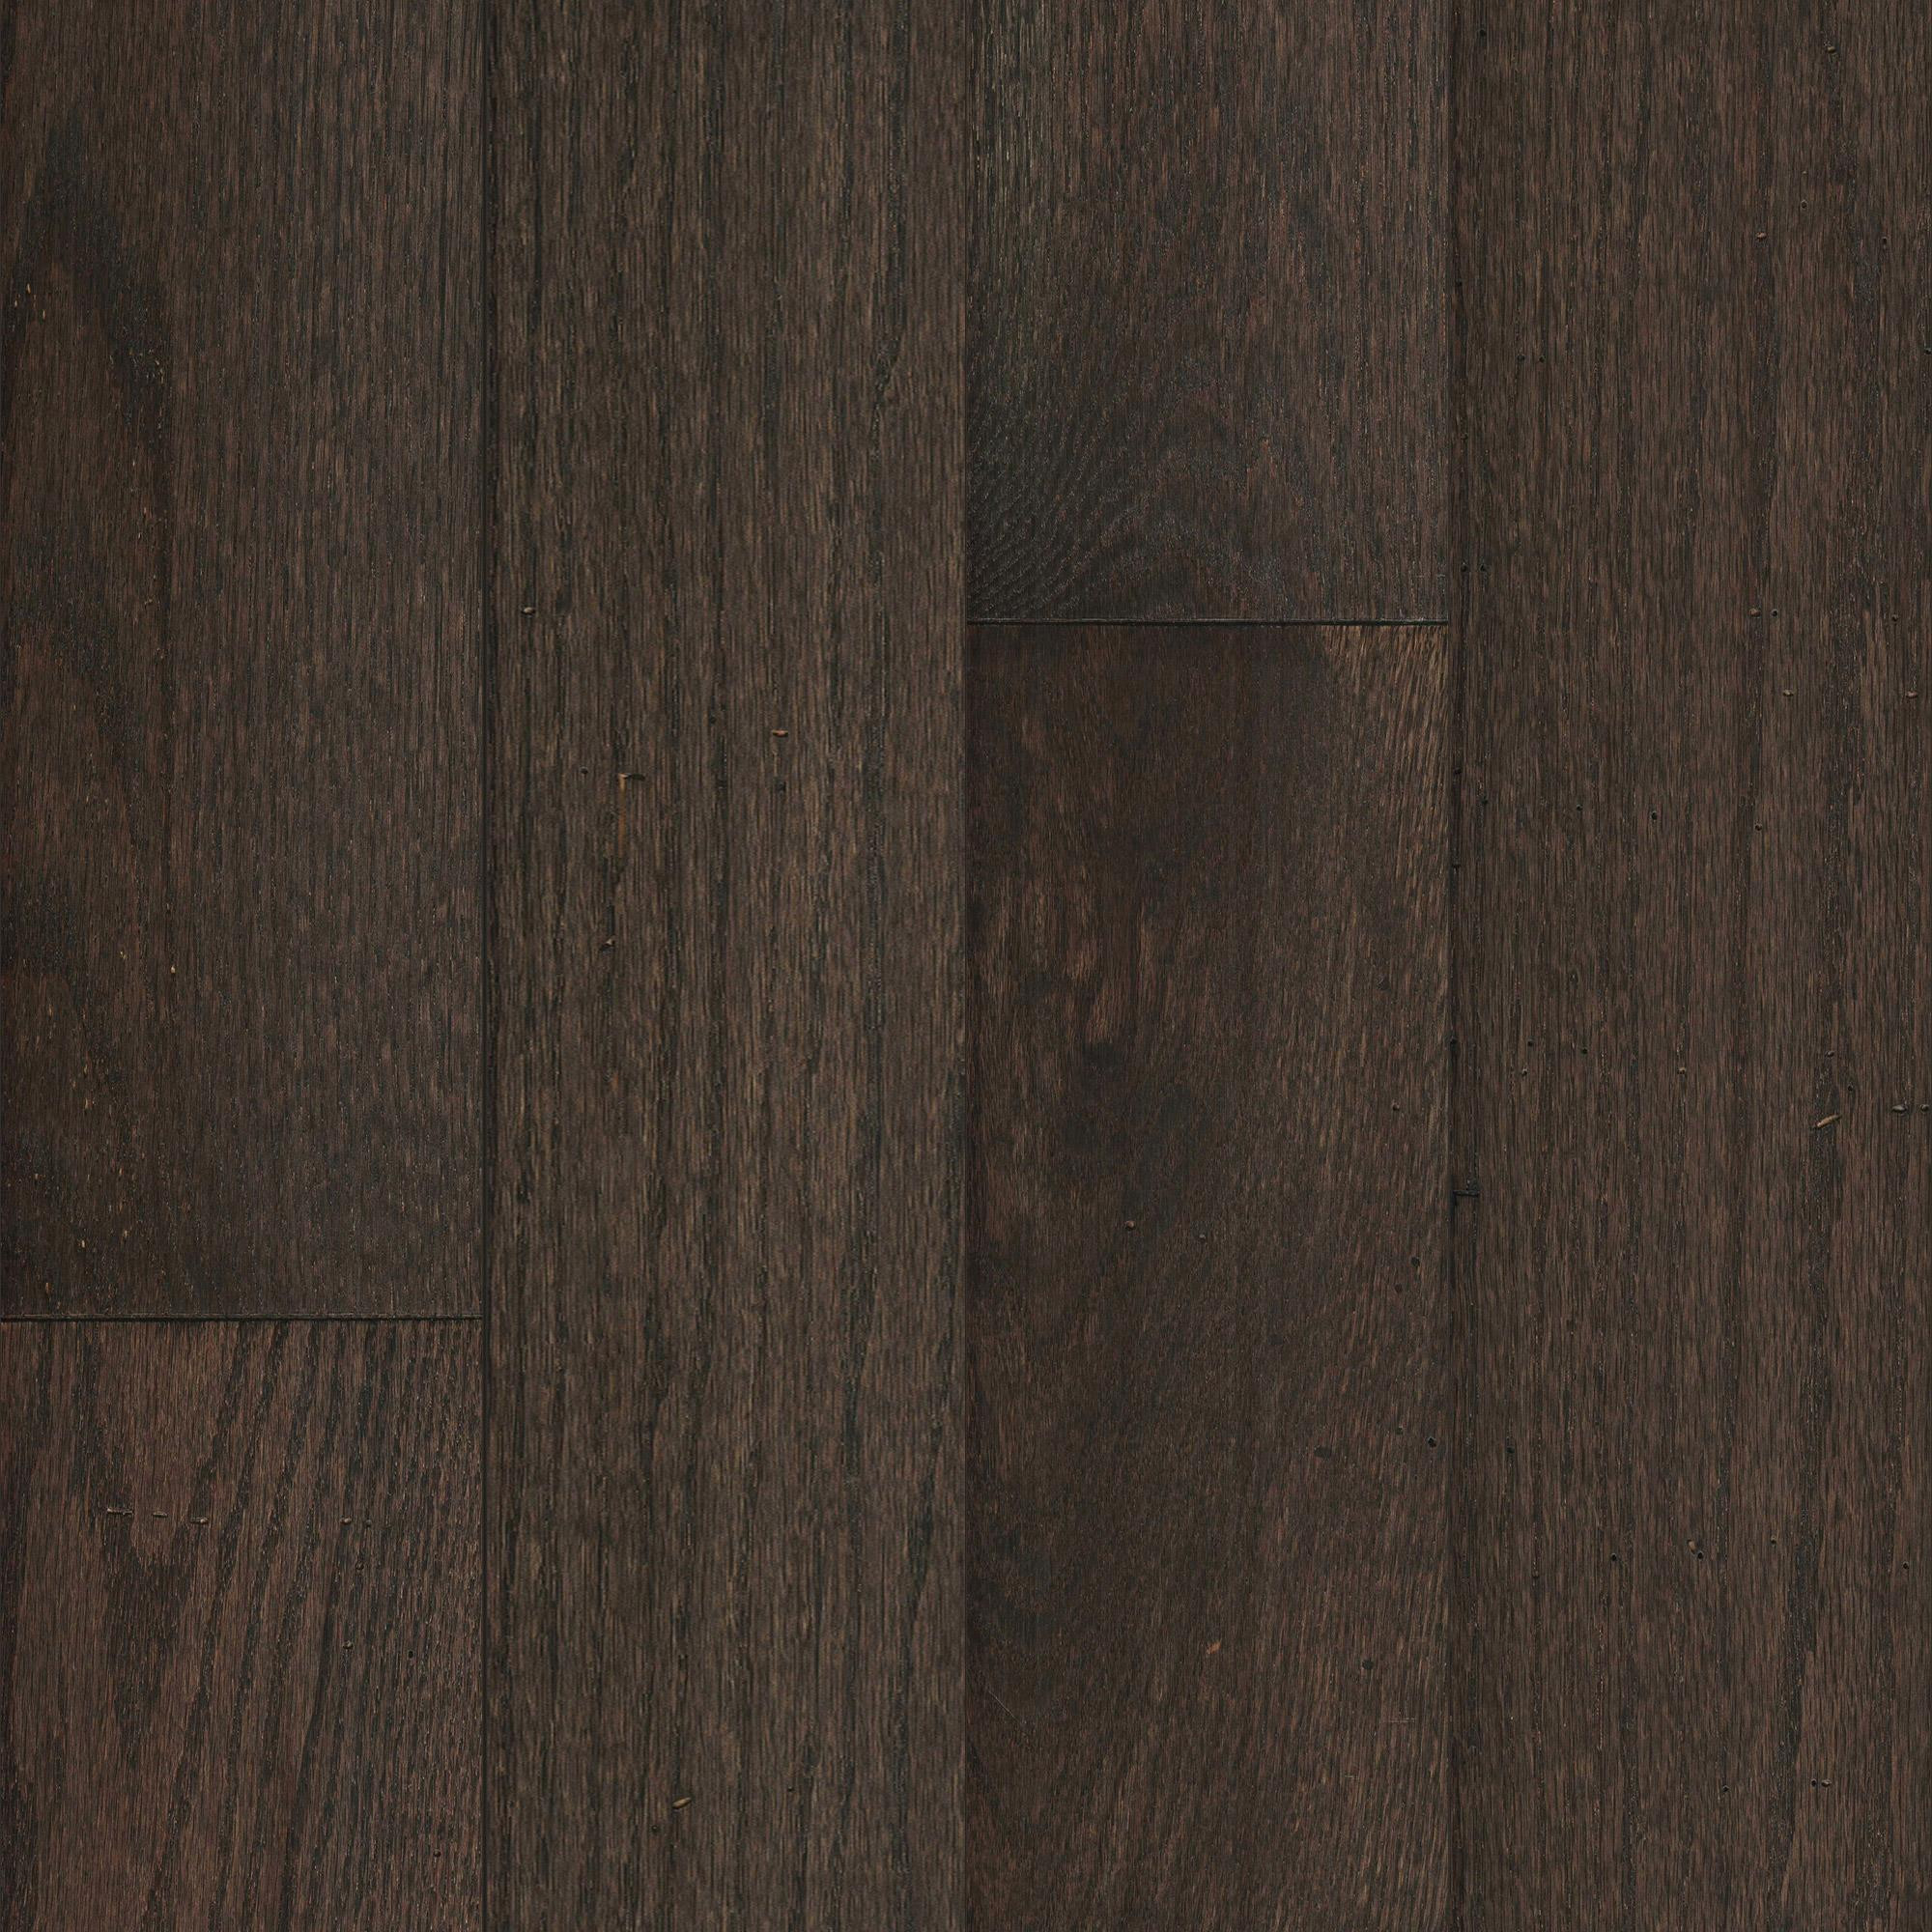 4 Inch Red Oak Hardwood Flooring Of Mullican Muirfield Oak Granite 5 Wide solid Hardwood Flooring Intended for File 447 15